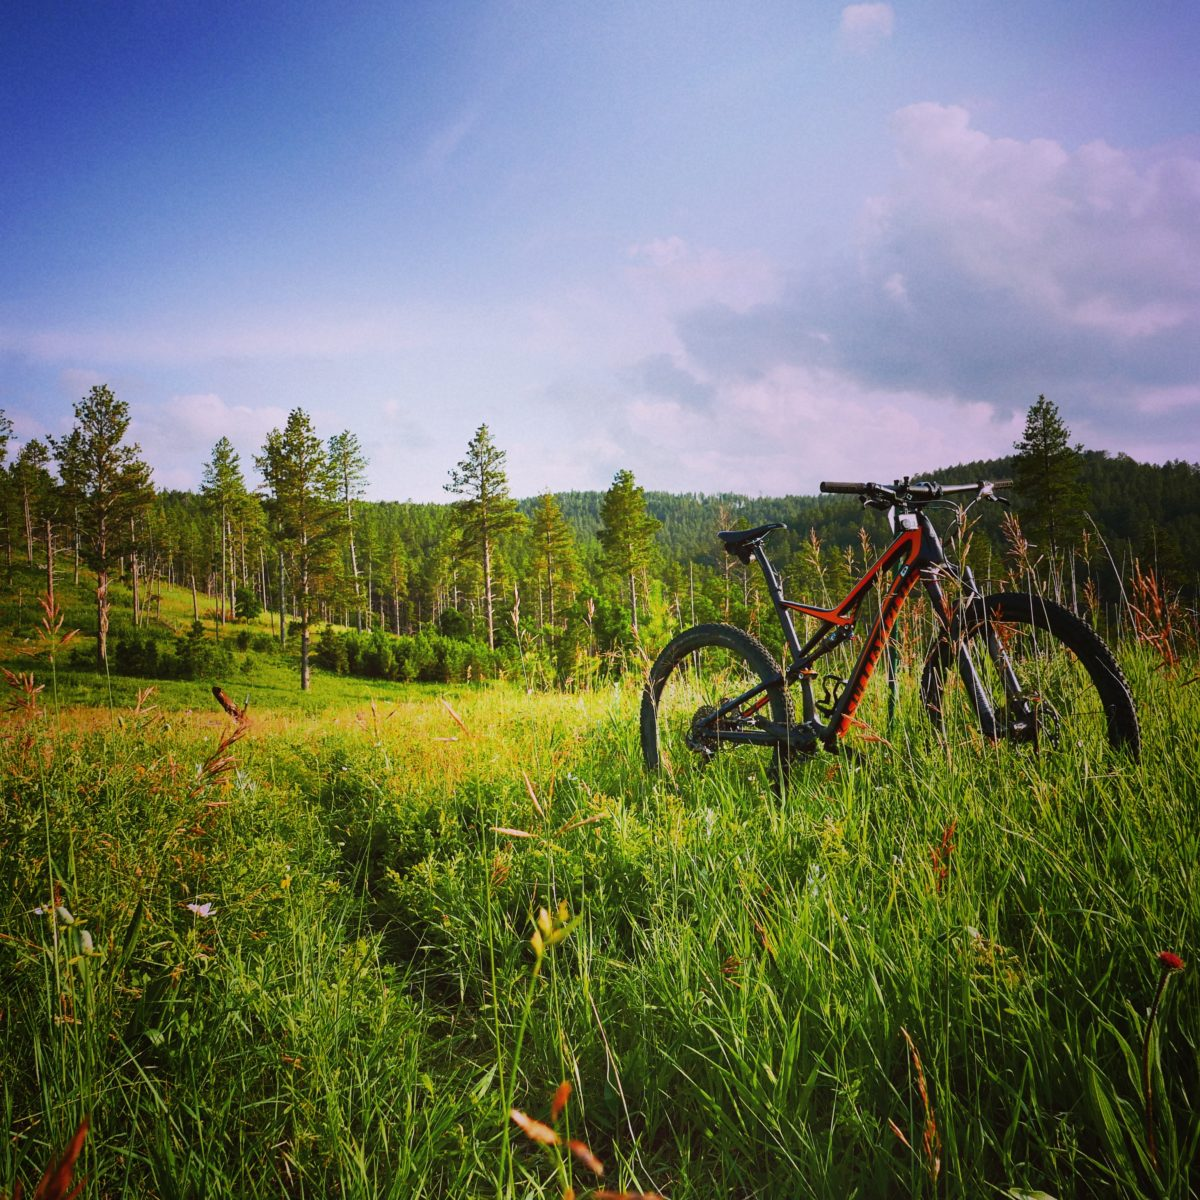 In the Black Hills, the mountain bike trails are great and are helping bringing a new kind of growth to the communities there.